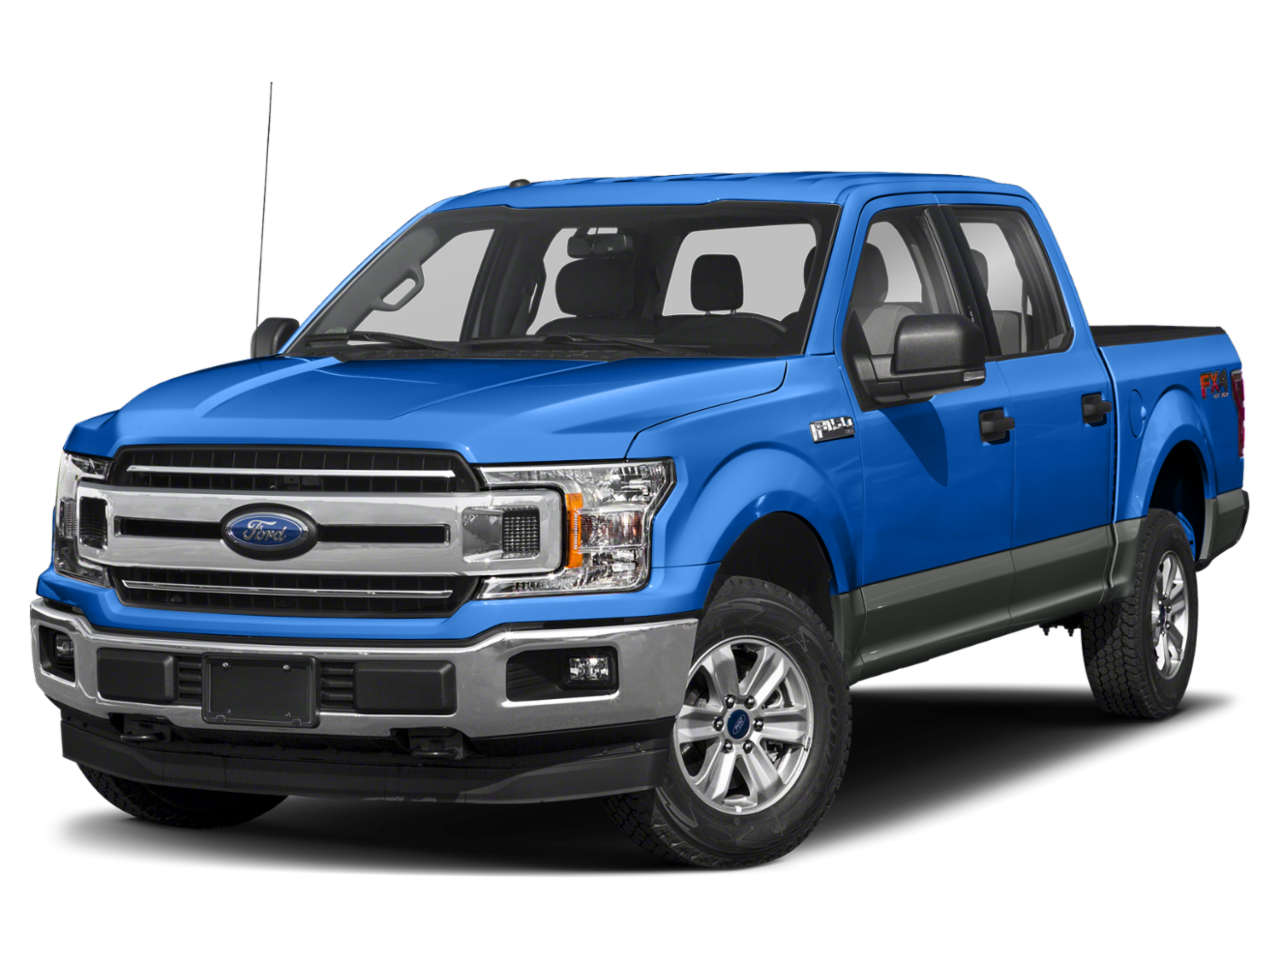 image-0 2020 Ford F-150